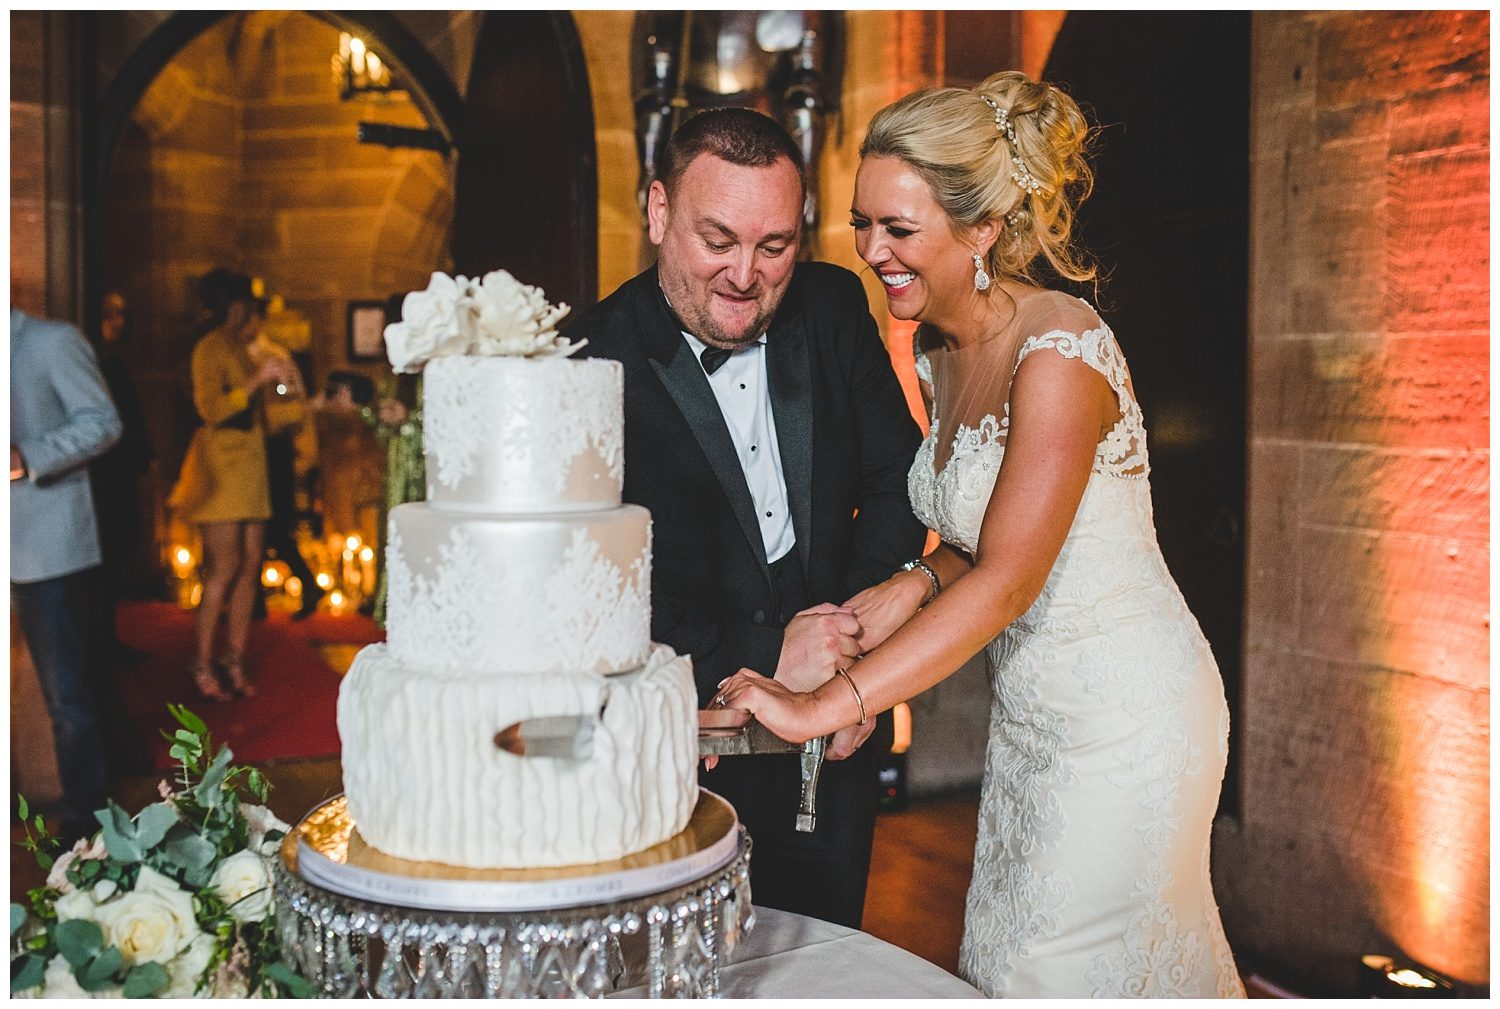 Bride and groom cutting the cake at Peckforton Castle